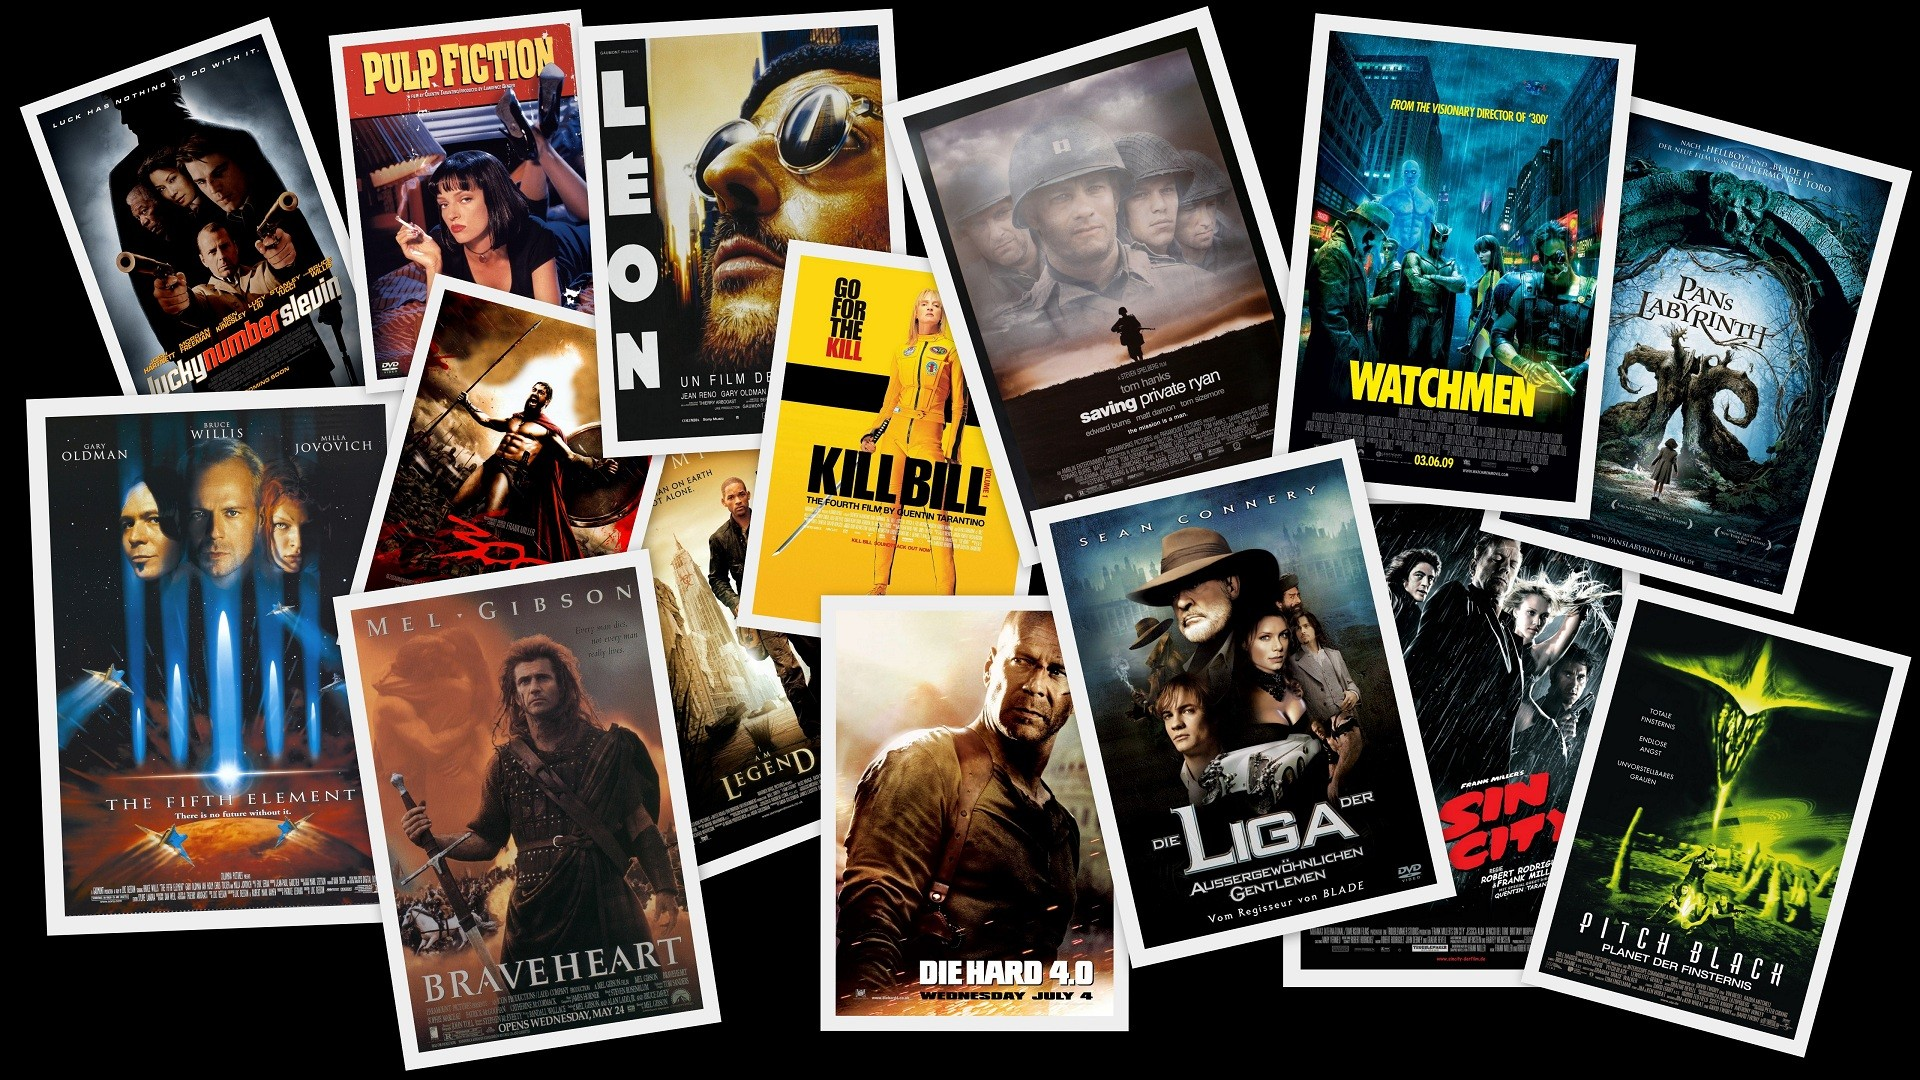 Movies digital art collage movie posters fan art wallpaper movies digital art collage movie posters fan art wallpaper 1920x1080 205901 wallpaperup voltagebd Image collections